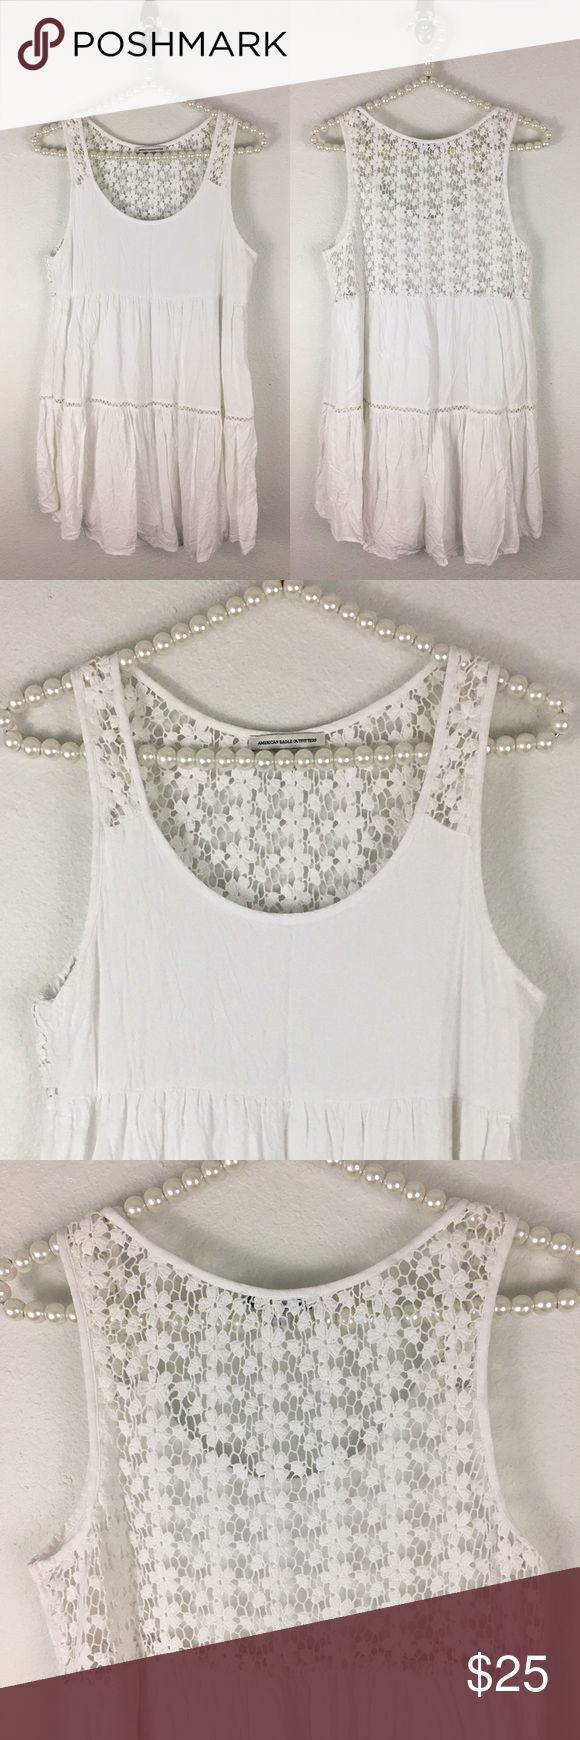 AE 🌻Festival Crochet Back Dress Sz Sm Super cute and super easy to wear - throw on some sandals and you are ready to go ! The back makes the dress ! Fully lined so it's white but not see thru - dress is made of 100% Viscose and Crochet and Lining are 100% Cotton. Sz Small Bust is approximately 17 inches measured flat and Length is shoulder to hem approximately 31 inches. Dress is A line shape. In great preworn condition. American Eagle Outfitters Dresses Mini